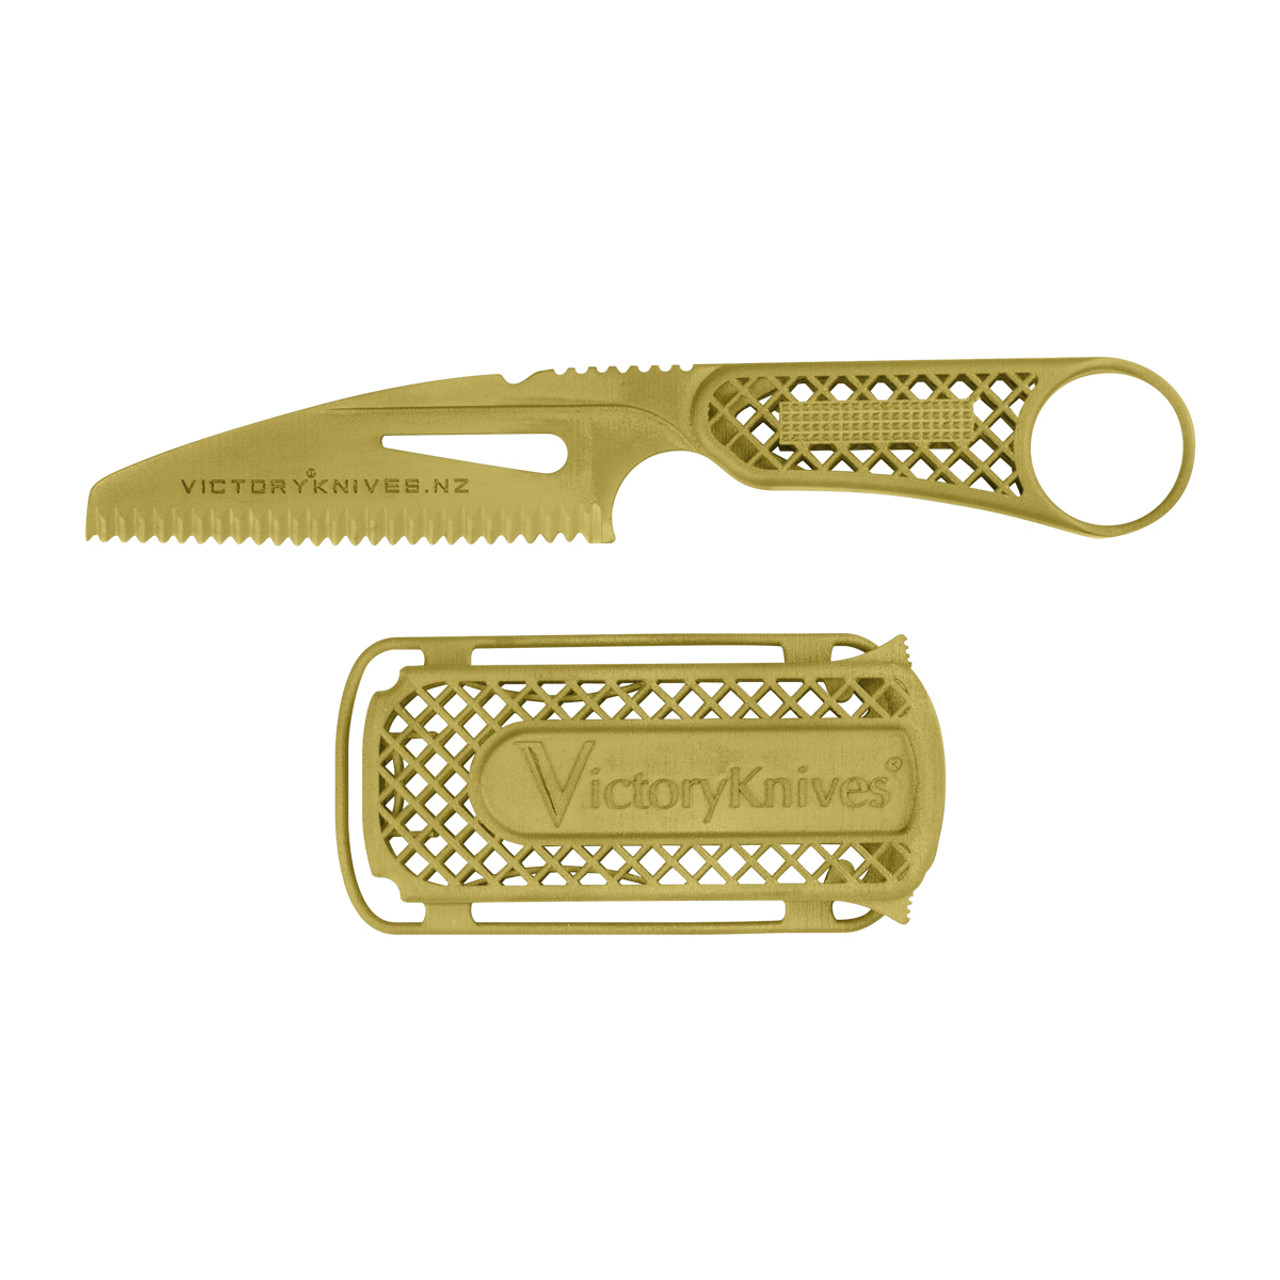 Titanium Knife and Sheath - XTB-1-Gold - (Gold PVD)